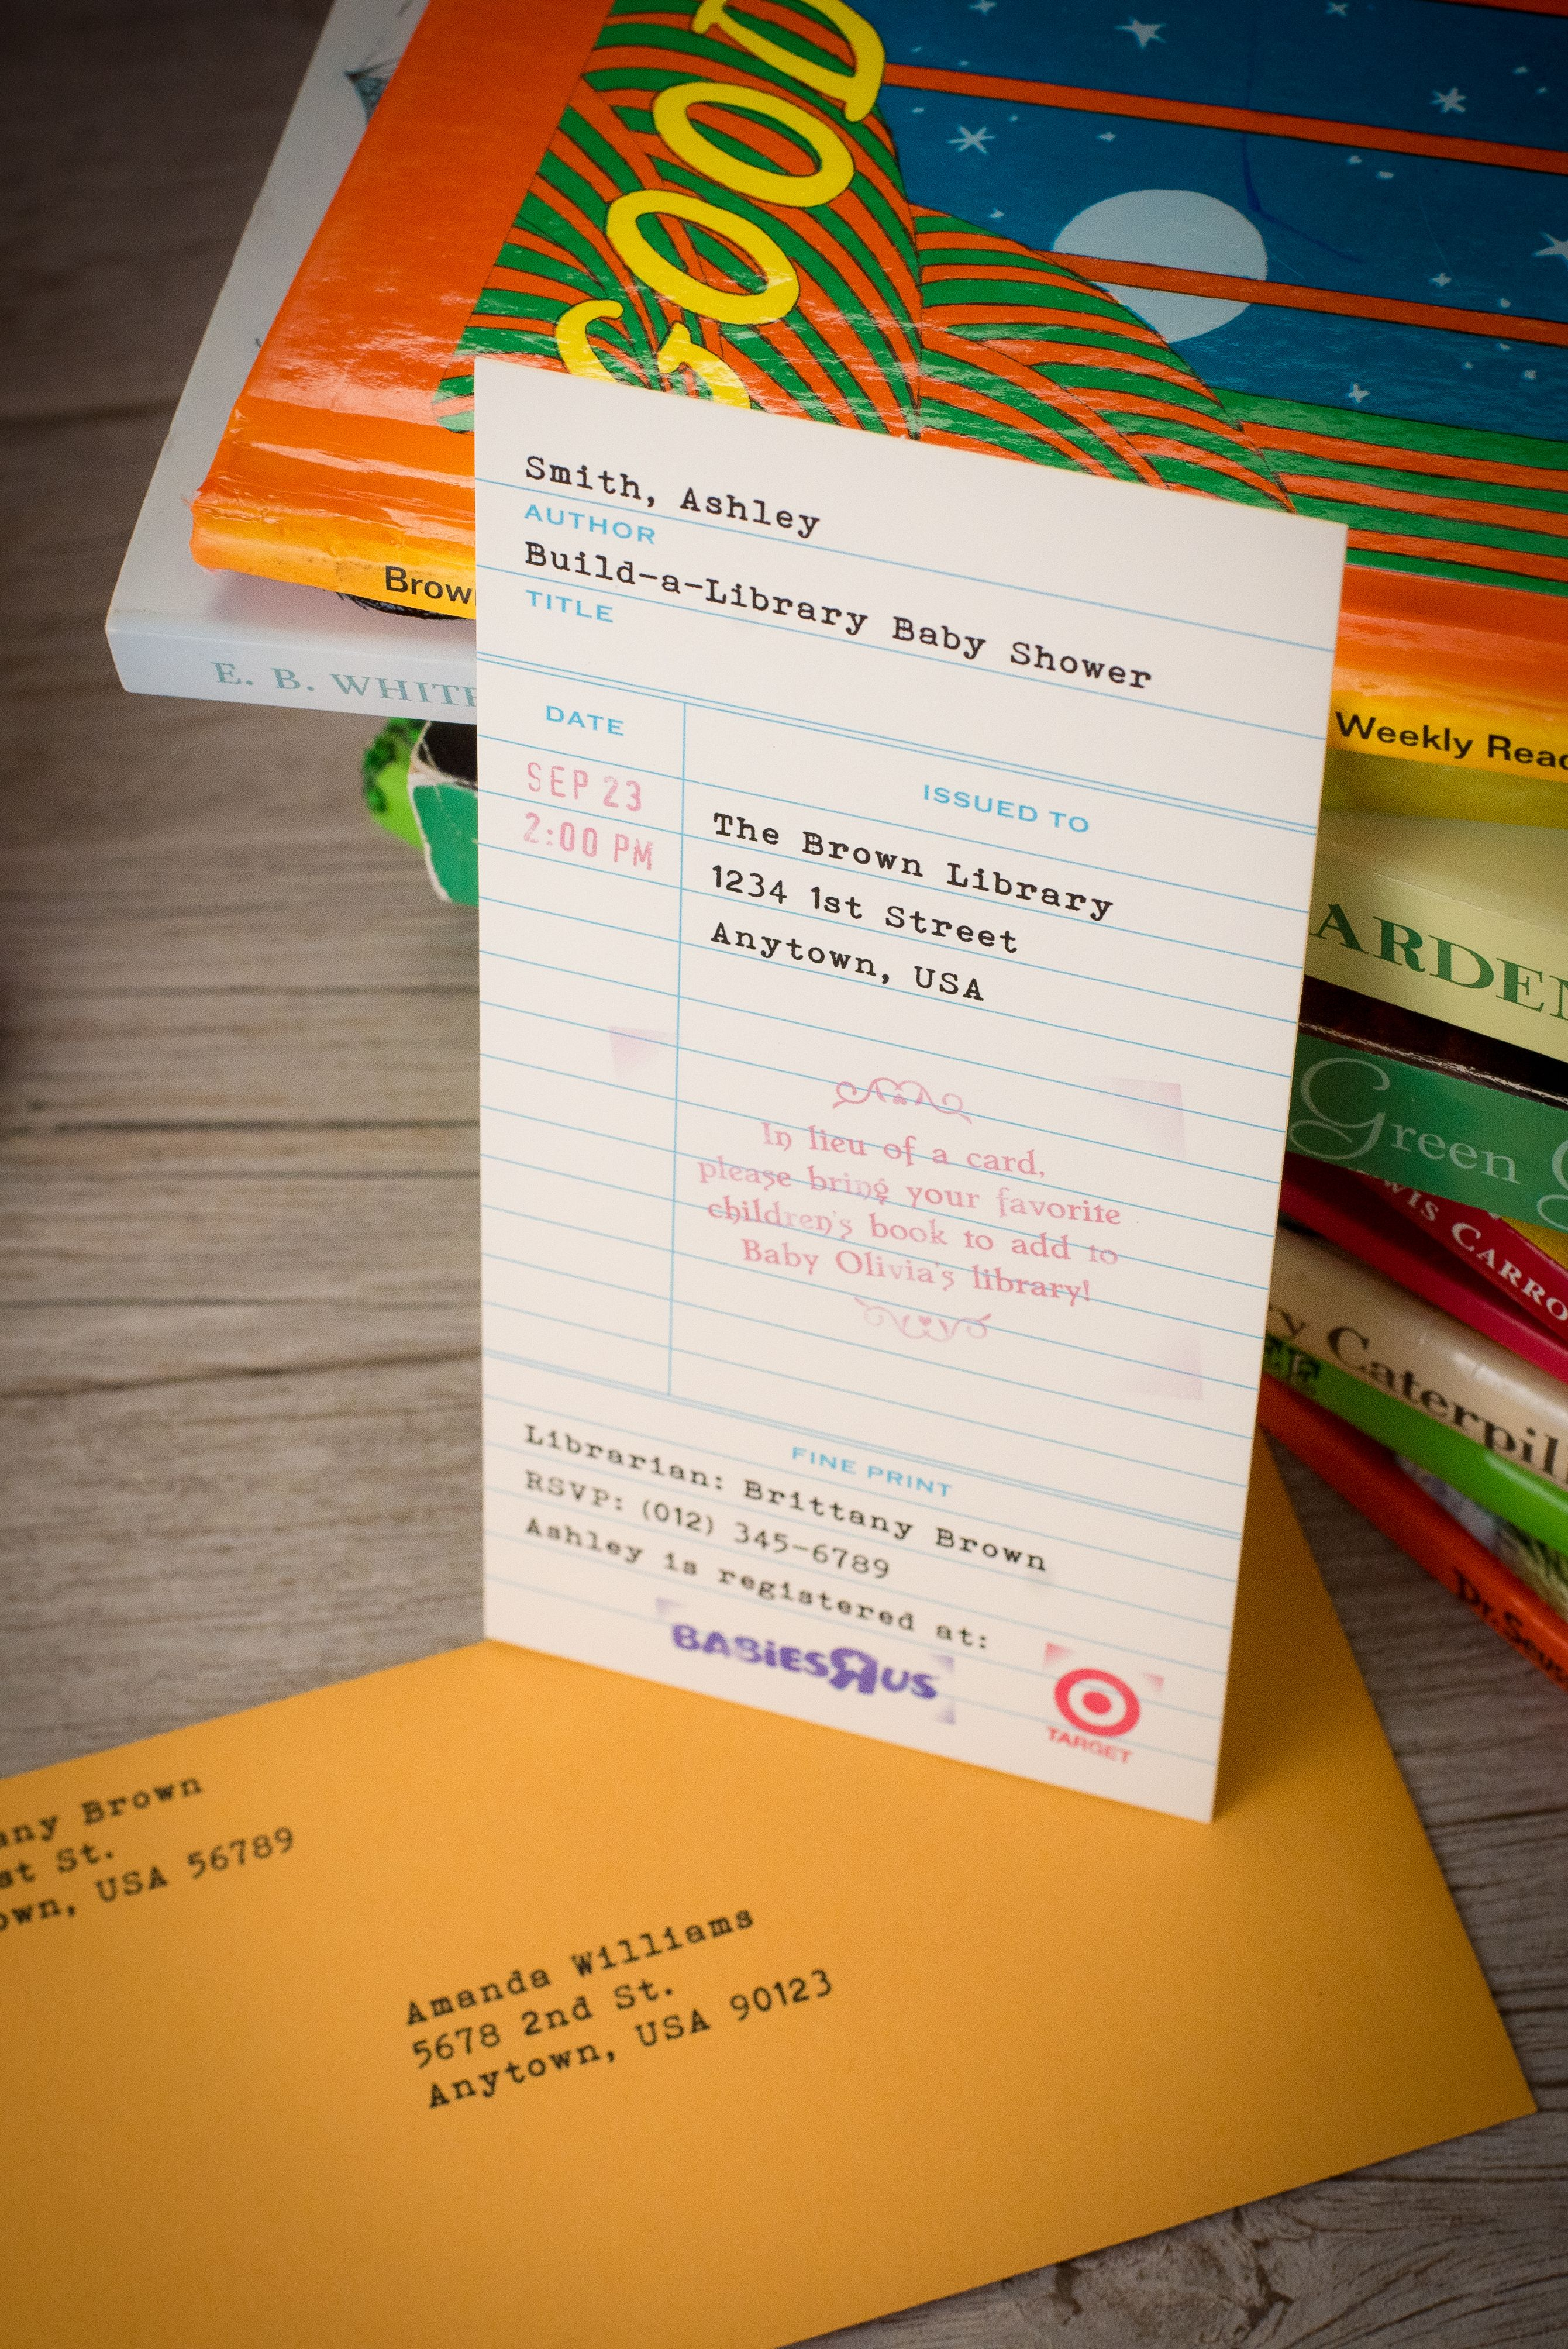 Buildalibrary baby shower invitations set of 5 book